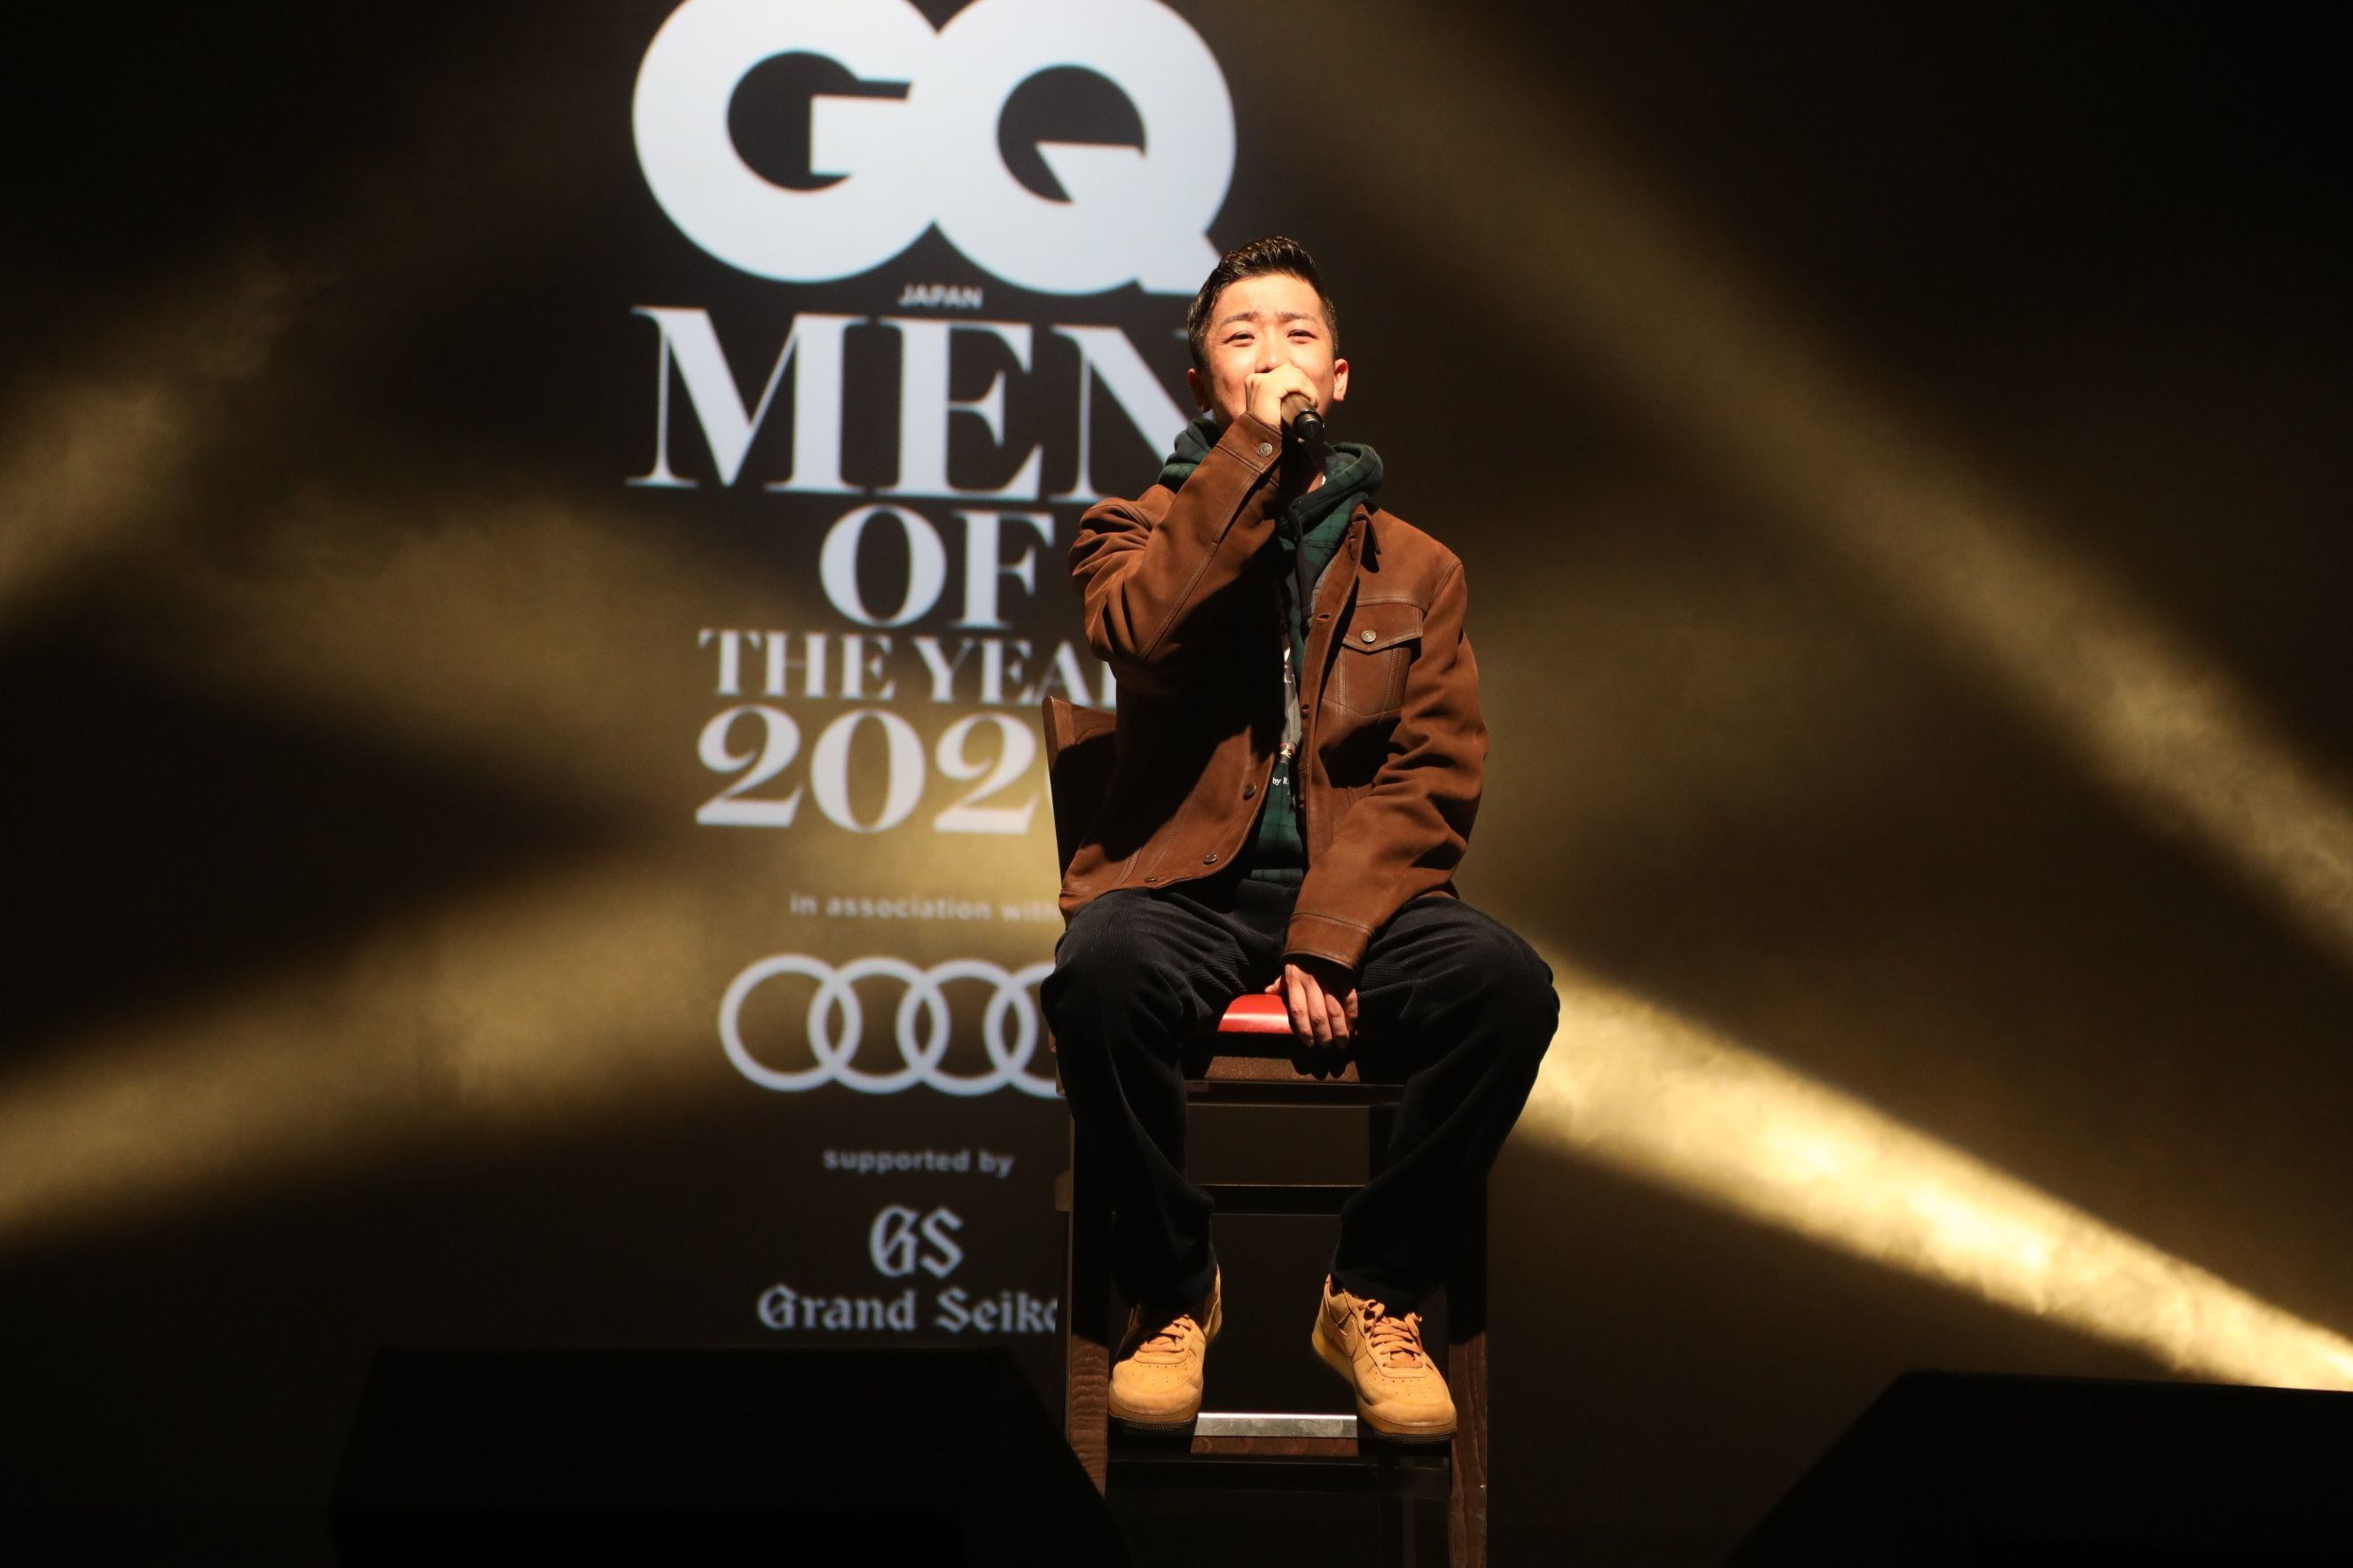 「GQ MEN OF THE YEAR 2020」 Photographed by Maciej Kucia @ AVGVST(C) 2020 CONDÉ NAST JAPAN. All rights reserved.